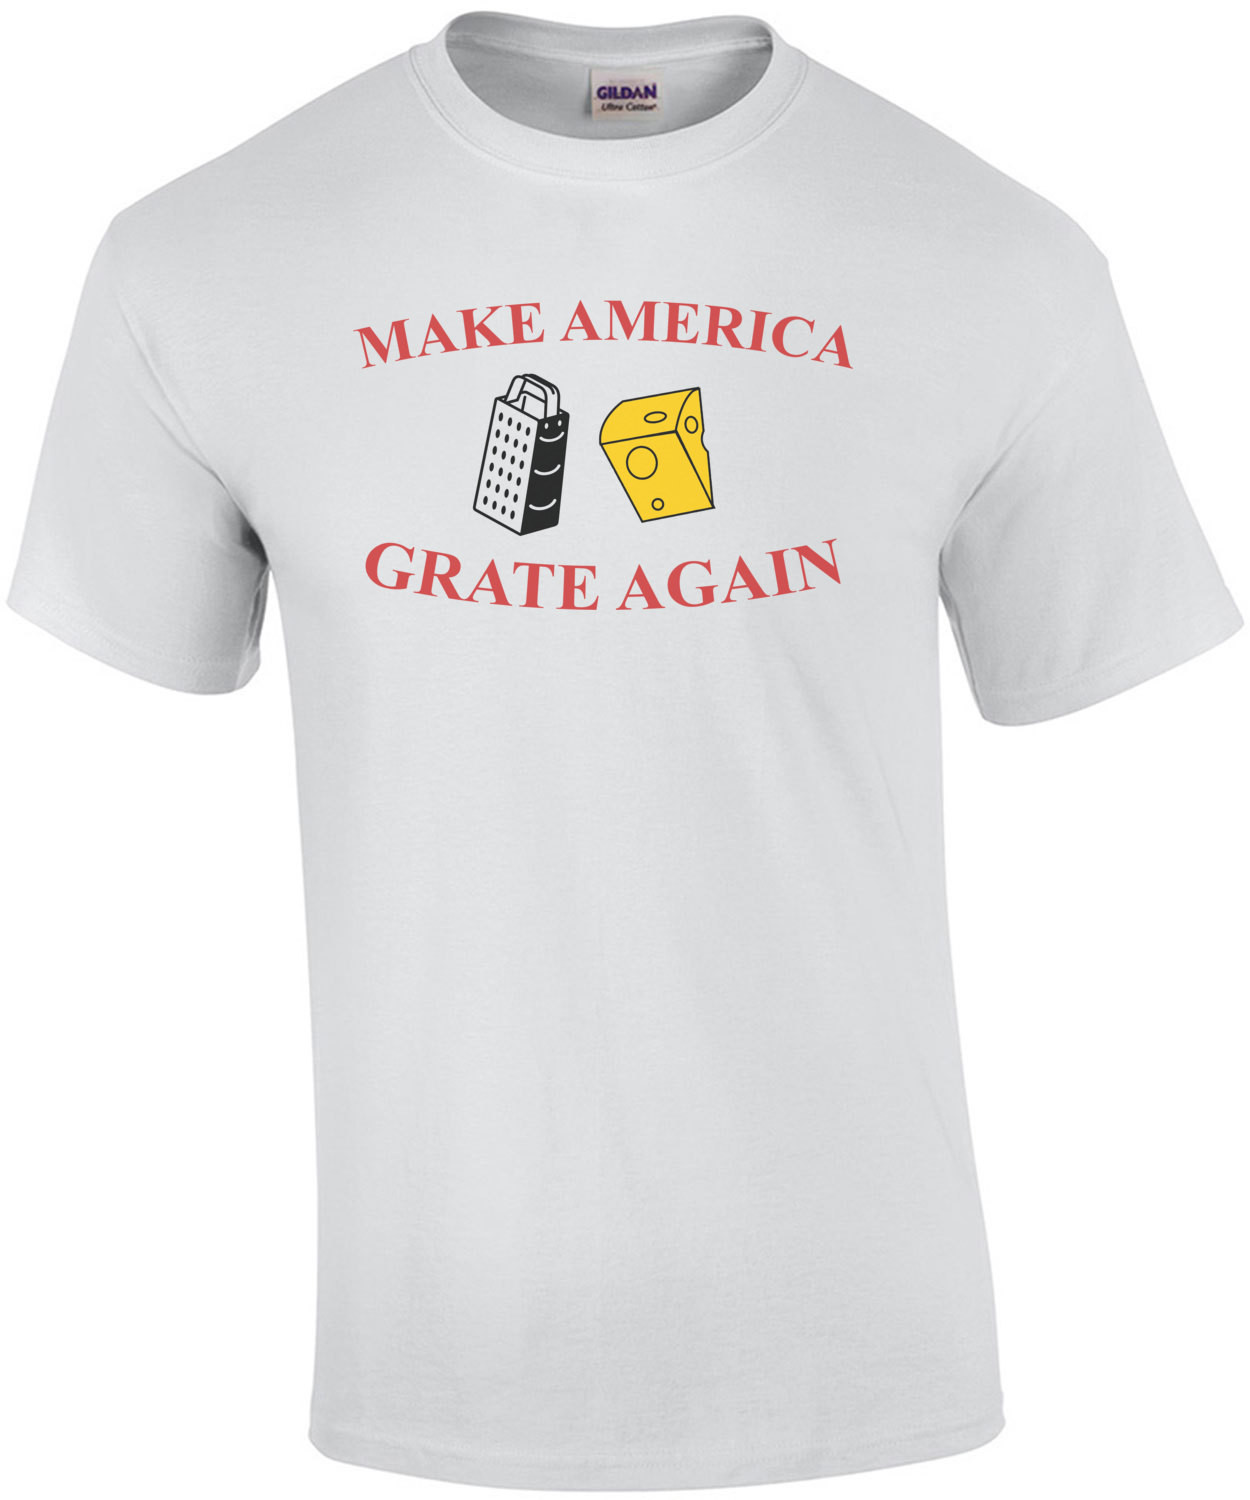 Make America Grate Again Cheesy T-Shirt